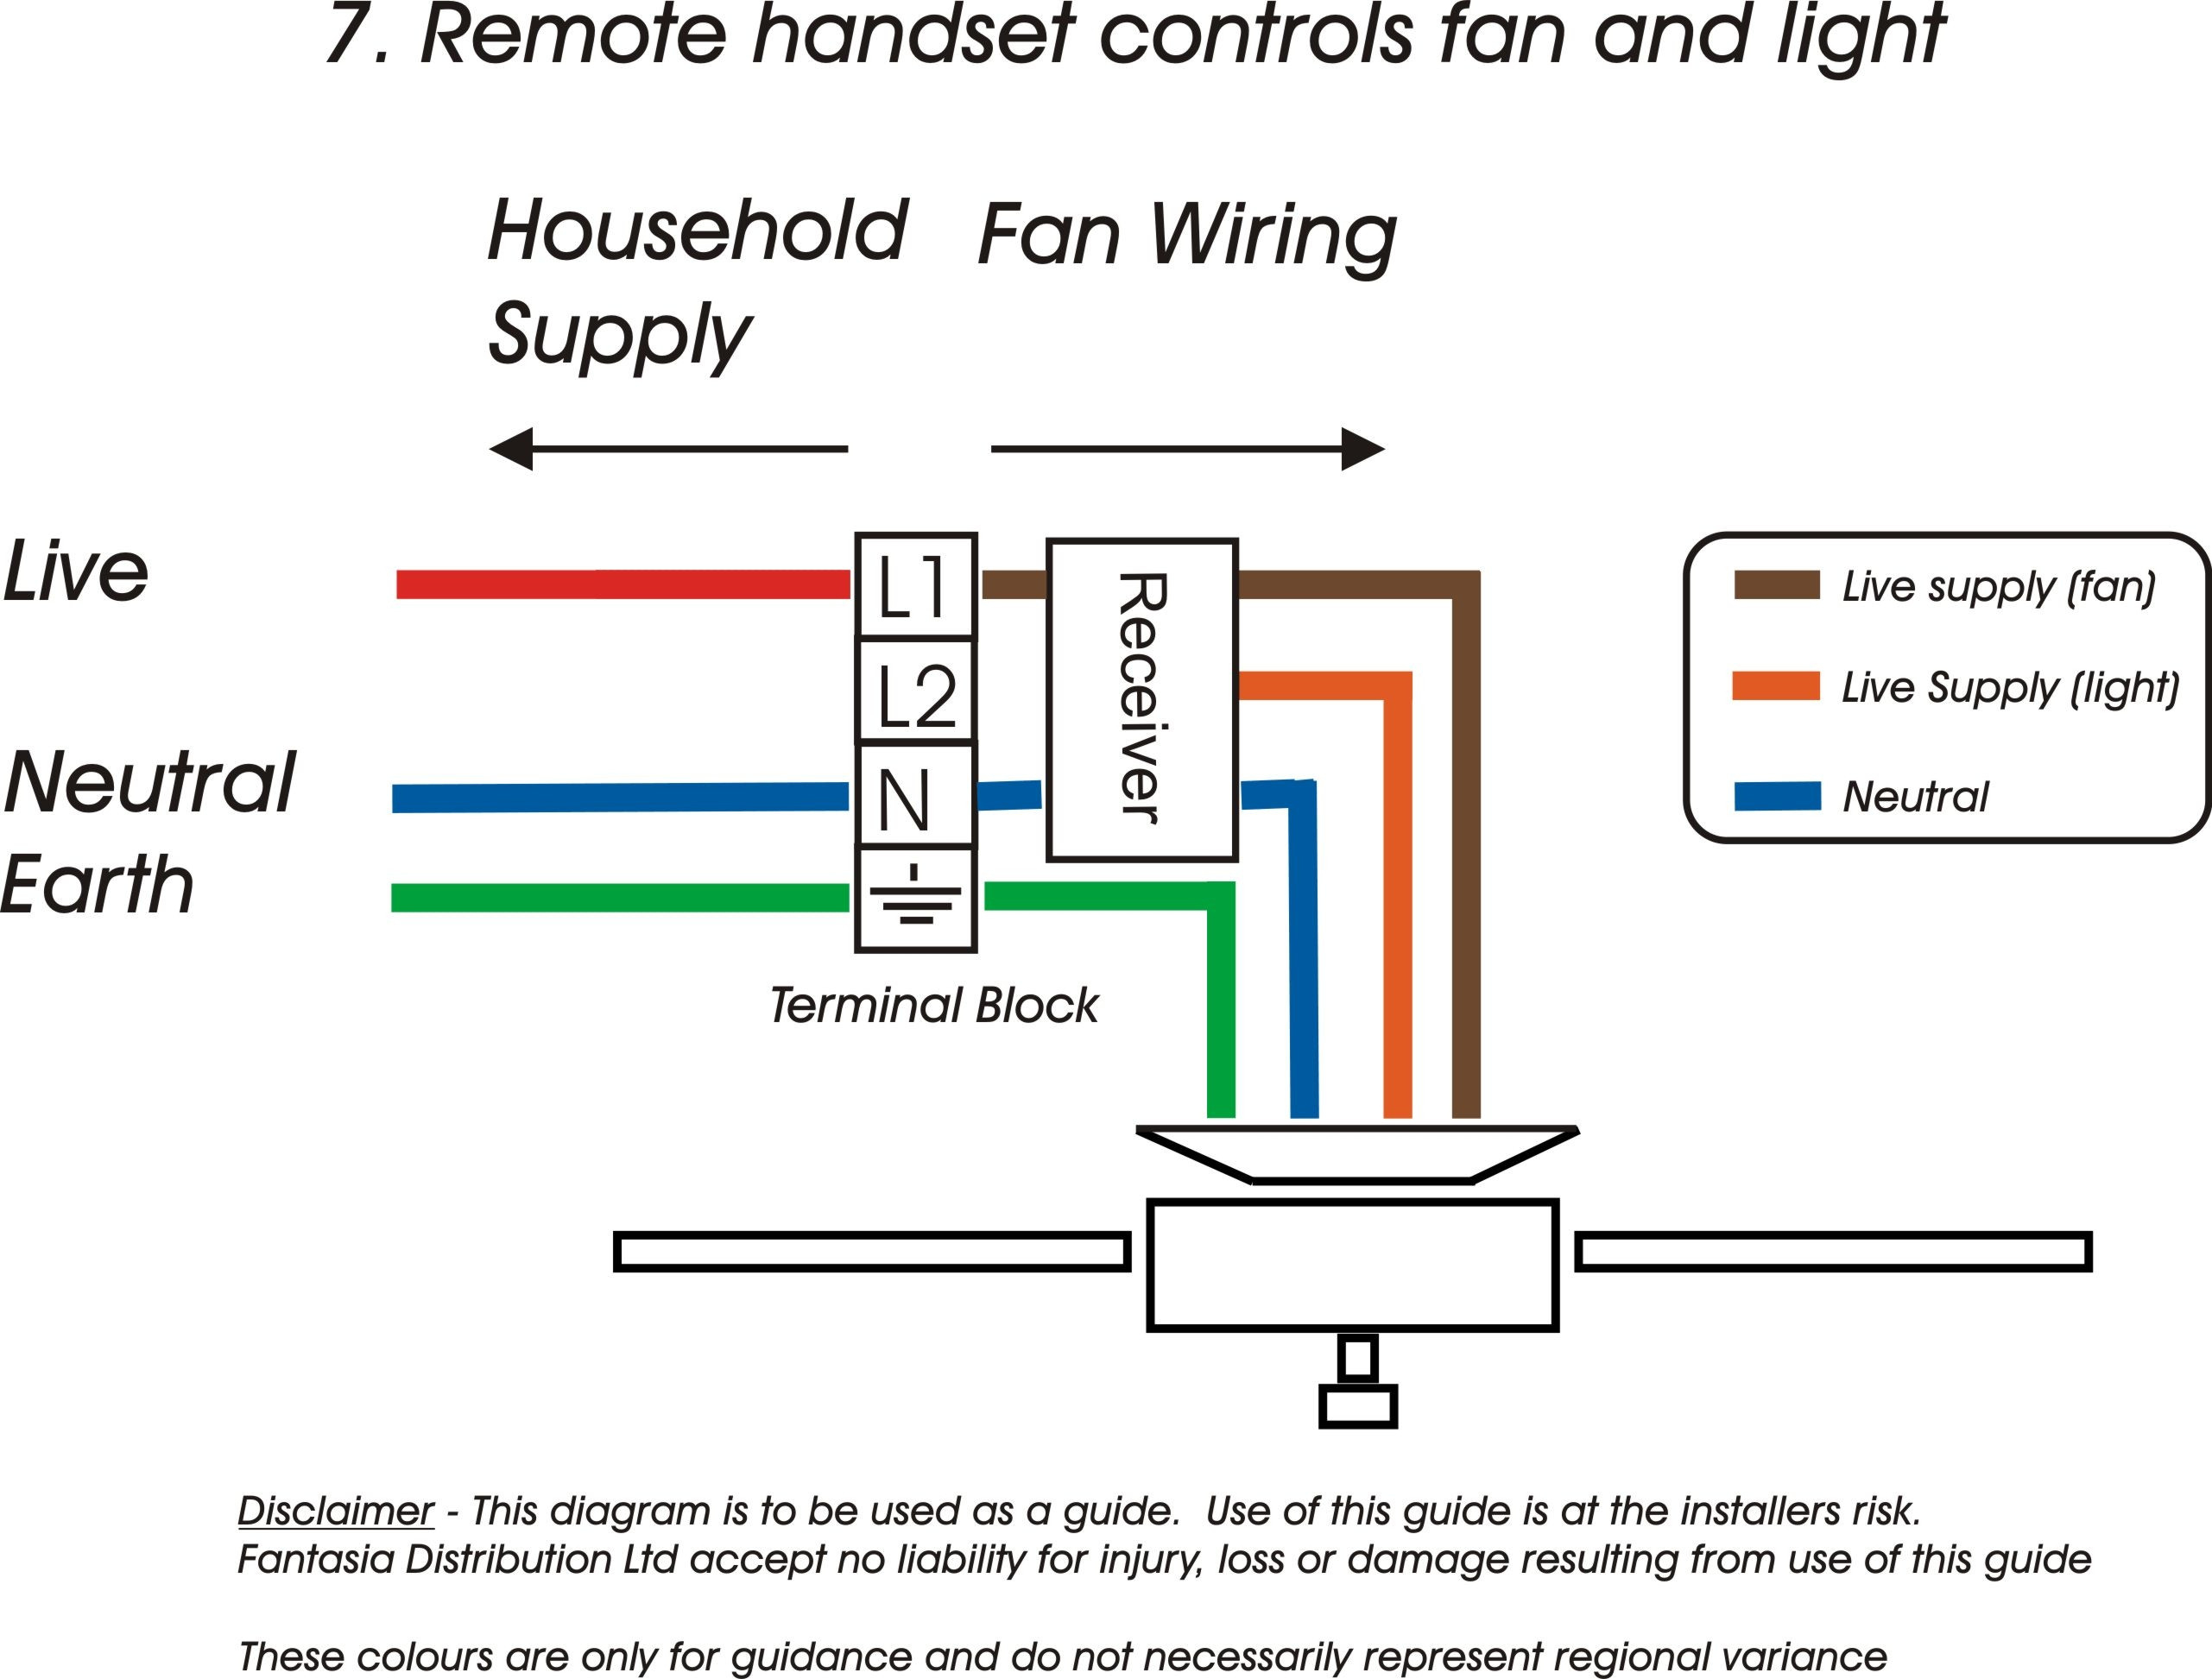 hunter fan wiring diagram remote control Collection-Wiring Diagram Fan Relay Switch New Ceiling Fan Wiring Diagram Single Switch 17-p